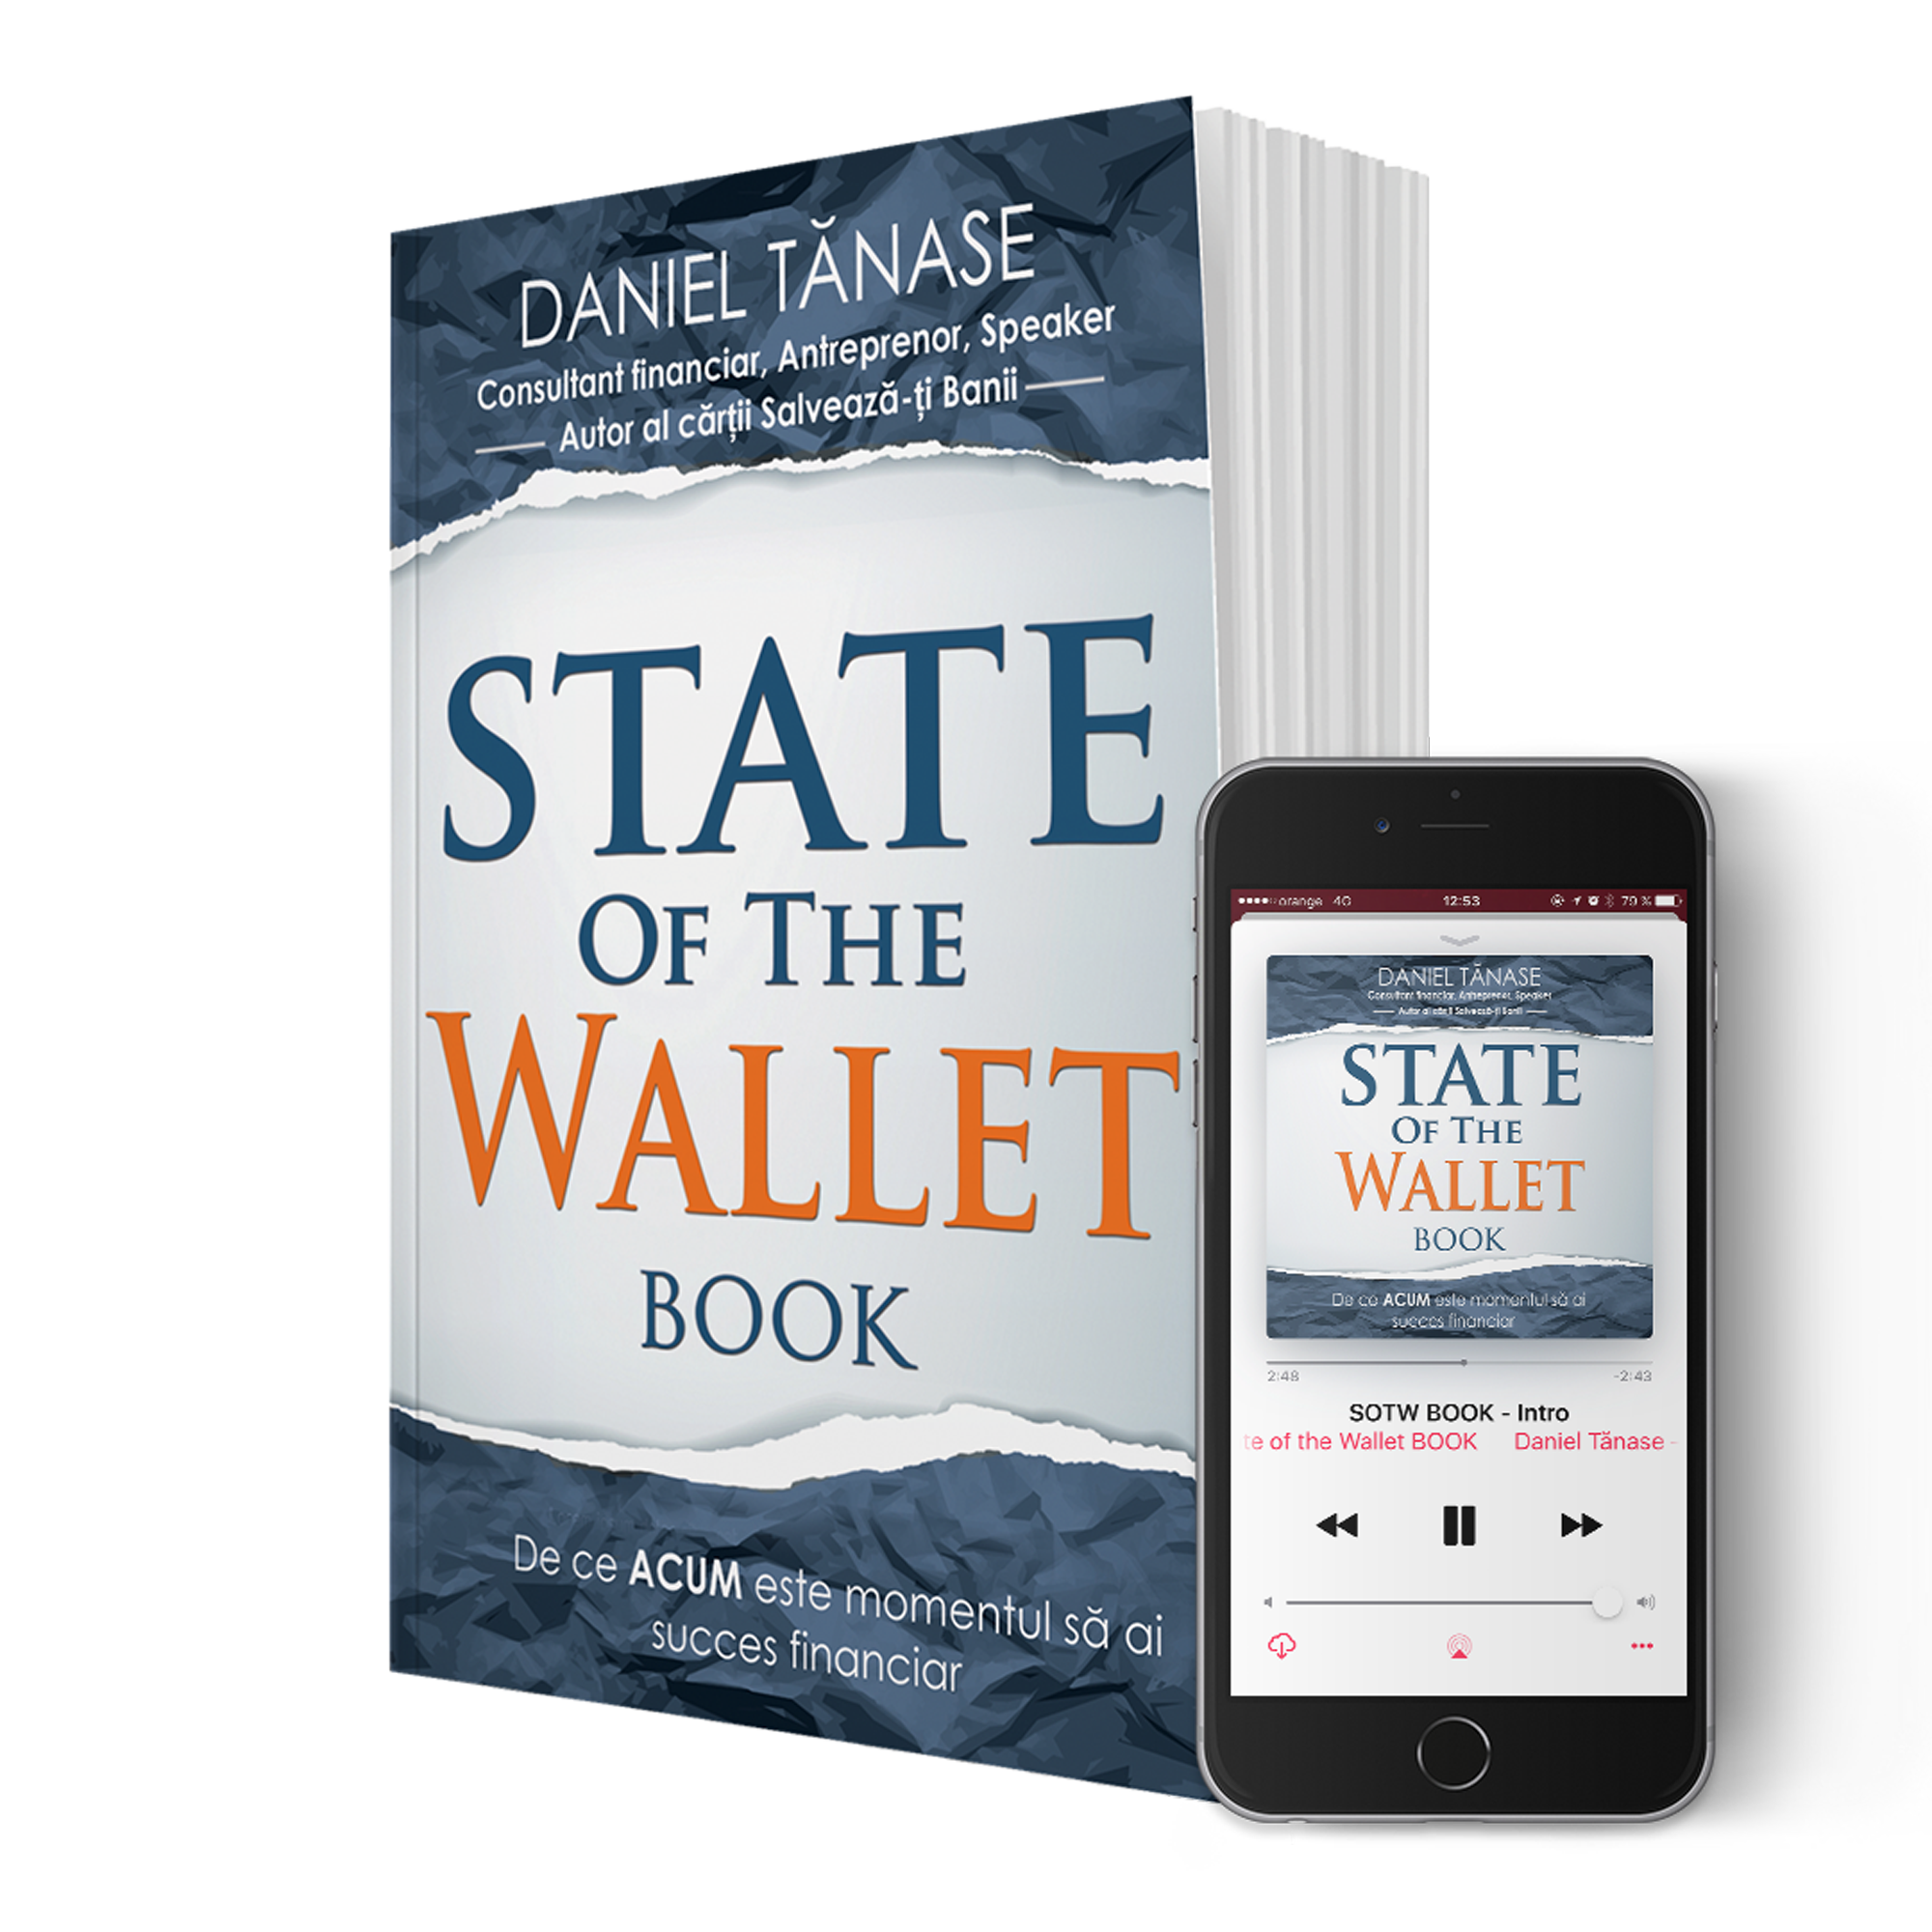 State of the Wallet BOOK